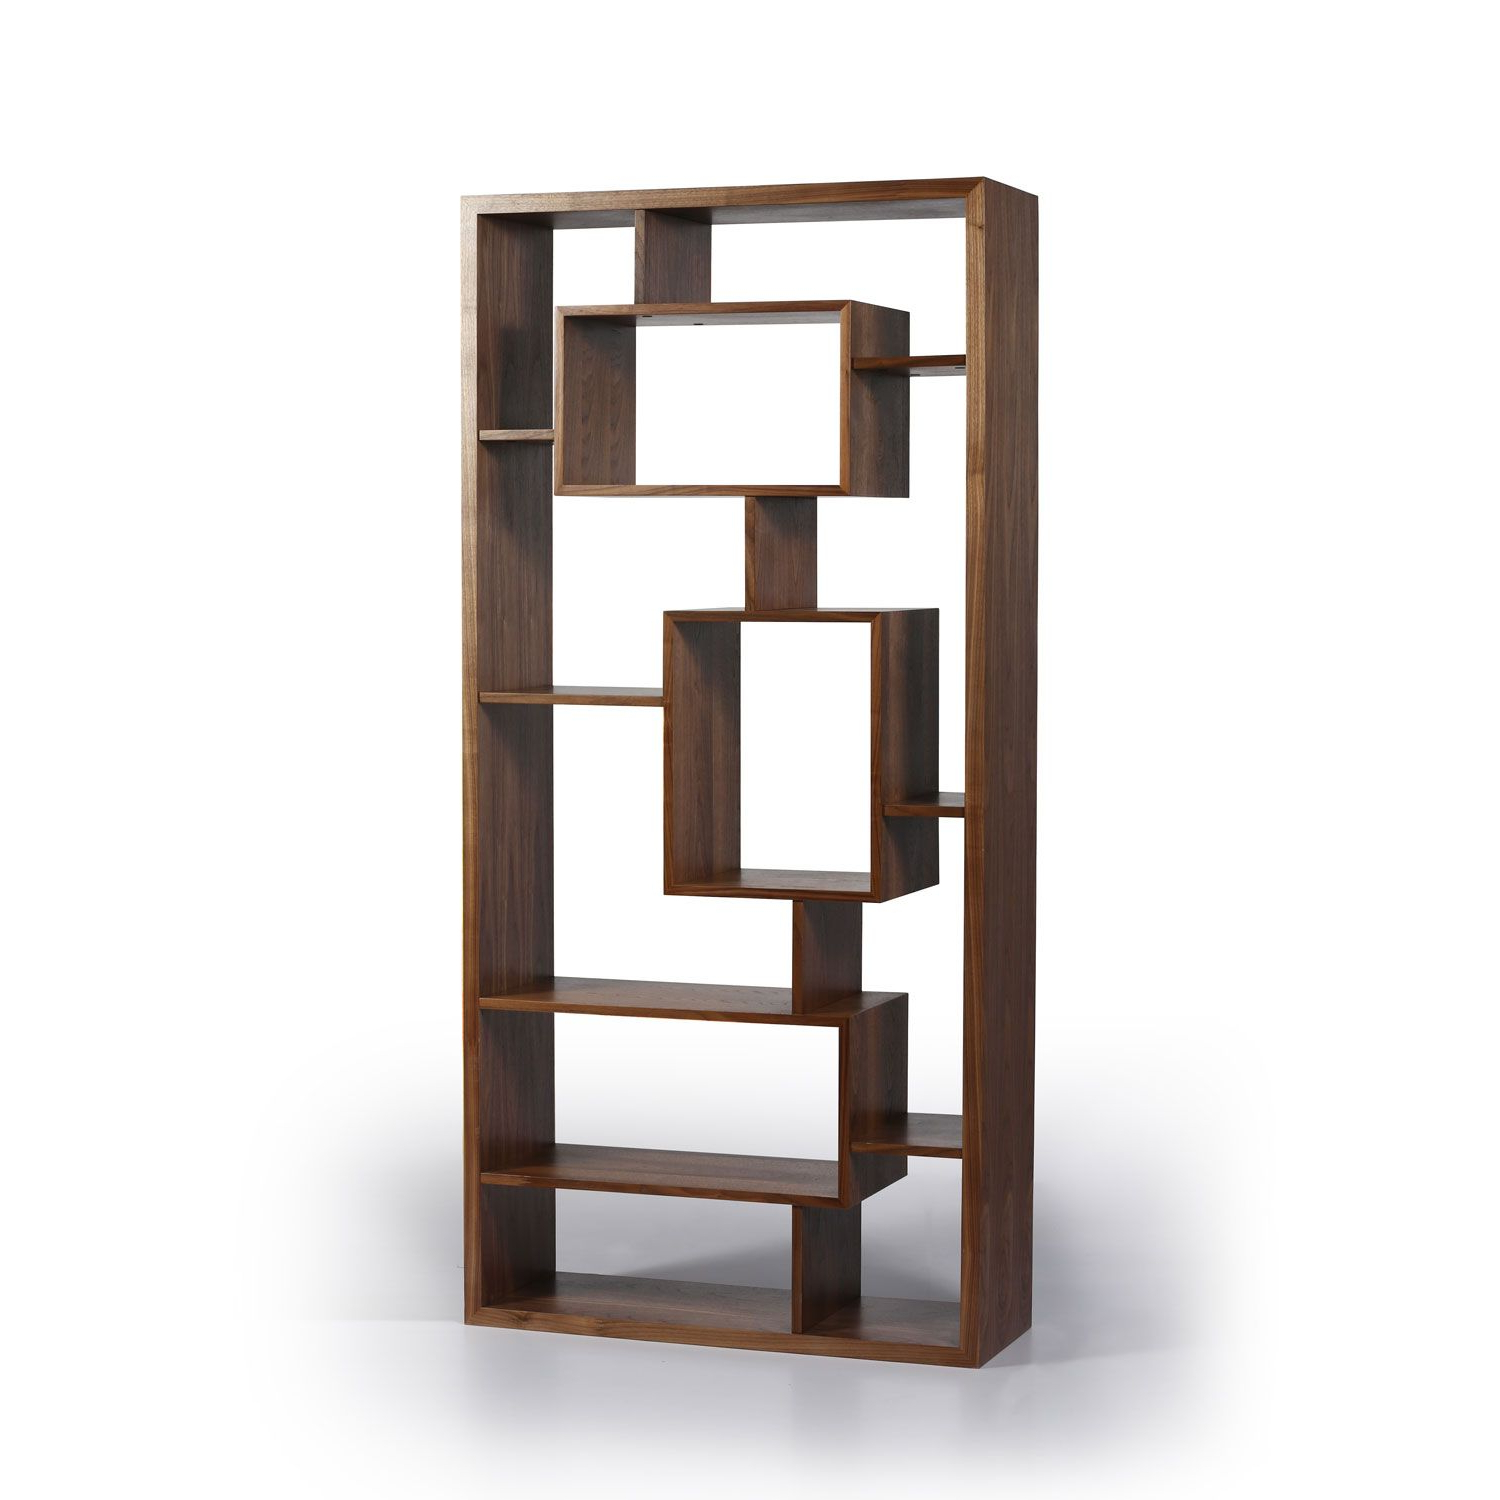 Latest Carnageeragh Geometric Bookcases In Furniture And Décor For The Modern Lifestyle (View 14 of 20)